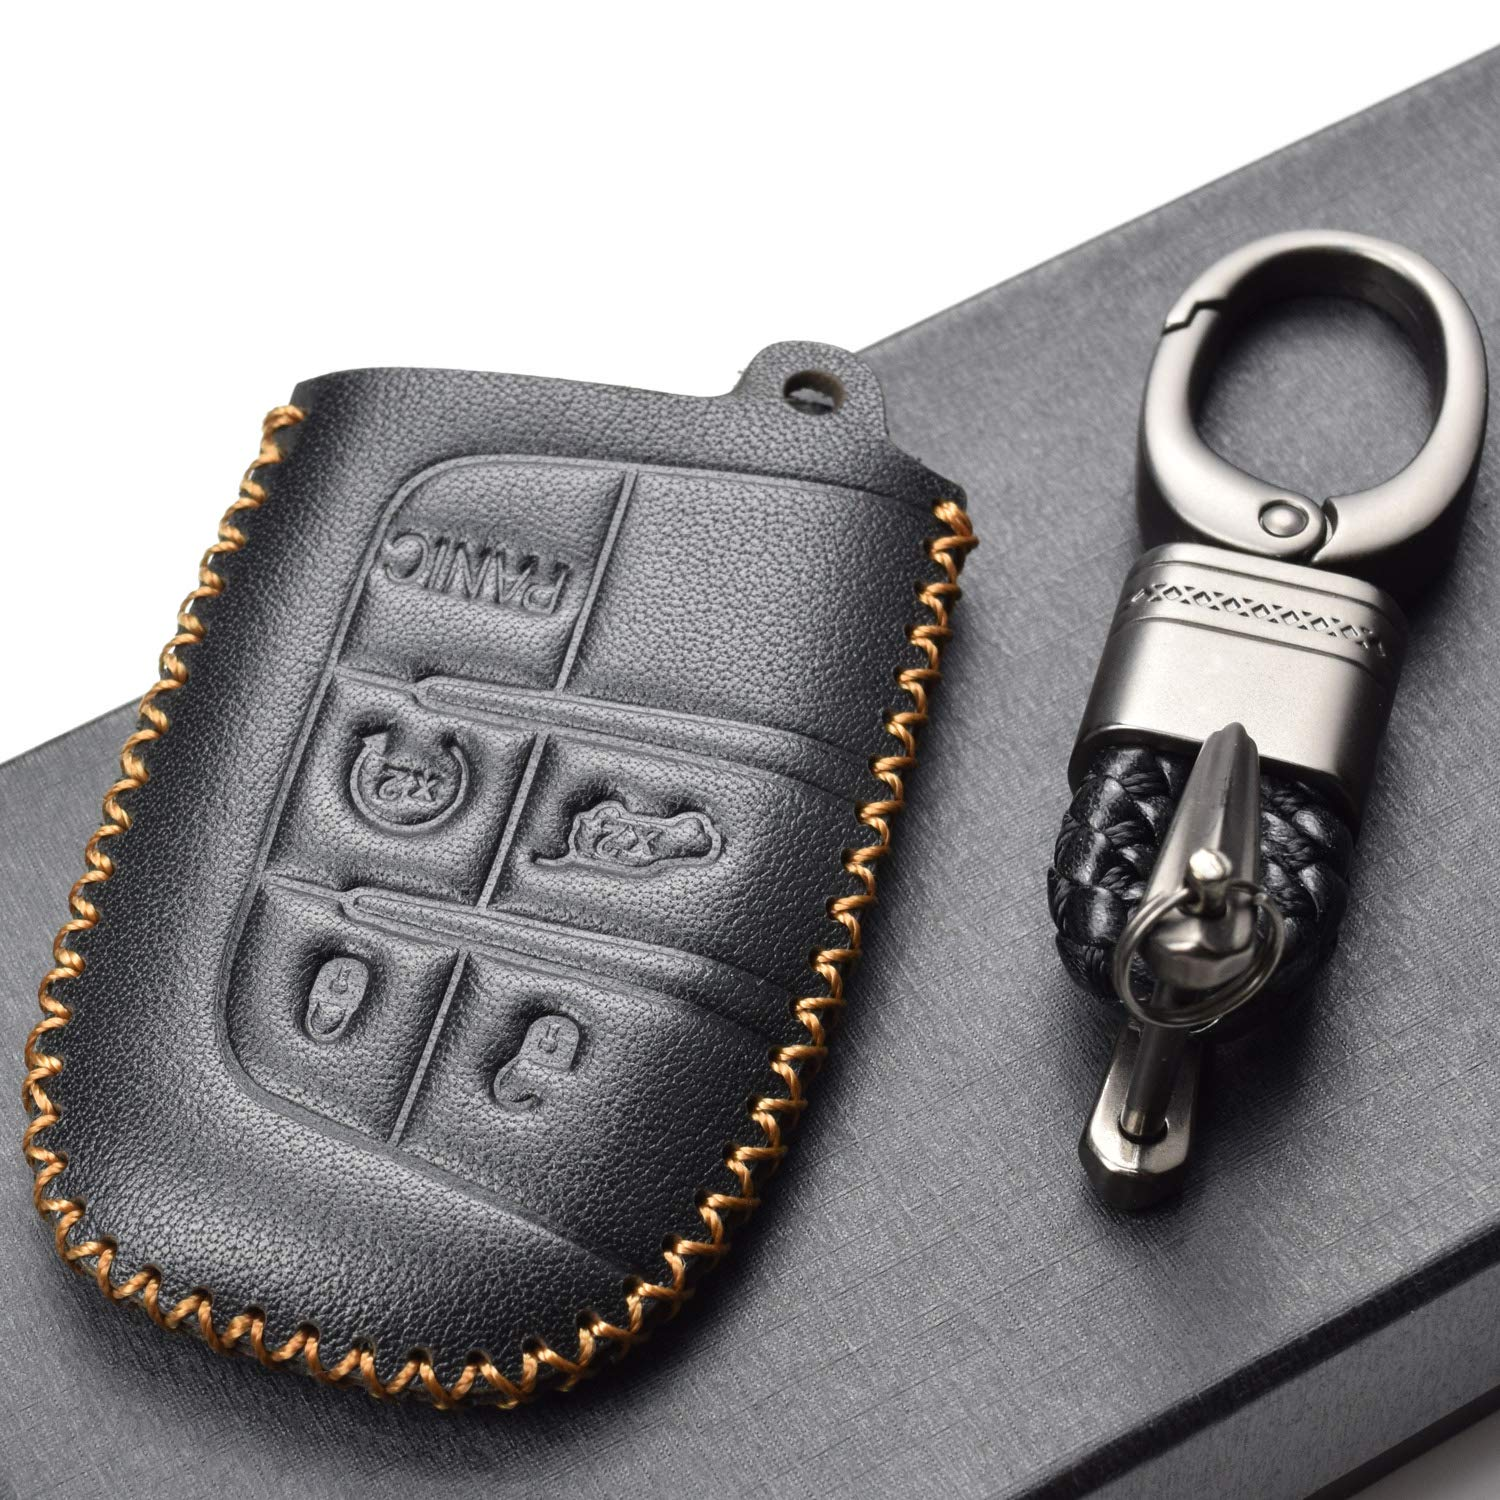 5 Buttons, Black//Red Dodge Vitodeco Inc Chrysler Vitodeco Genuine Leather Smart Key Keyless Remote Entry Fob Case Cover with Key Chain for JEEP